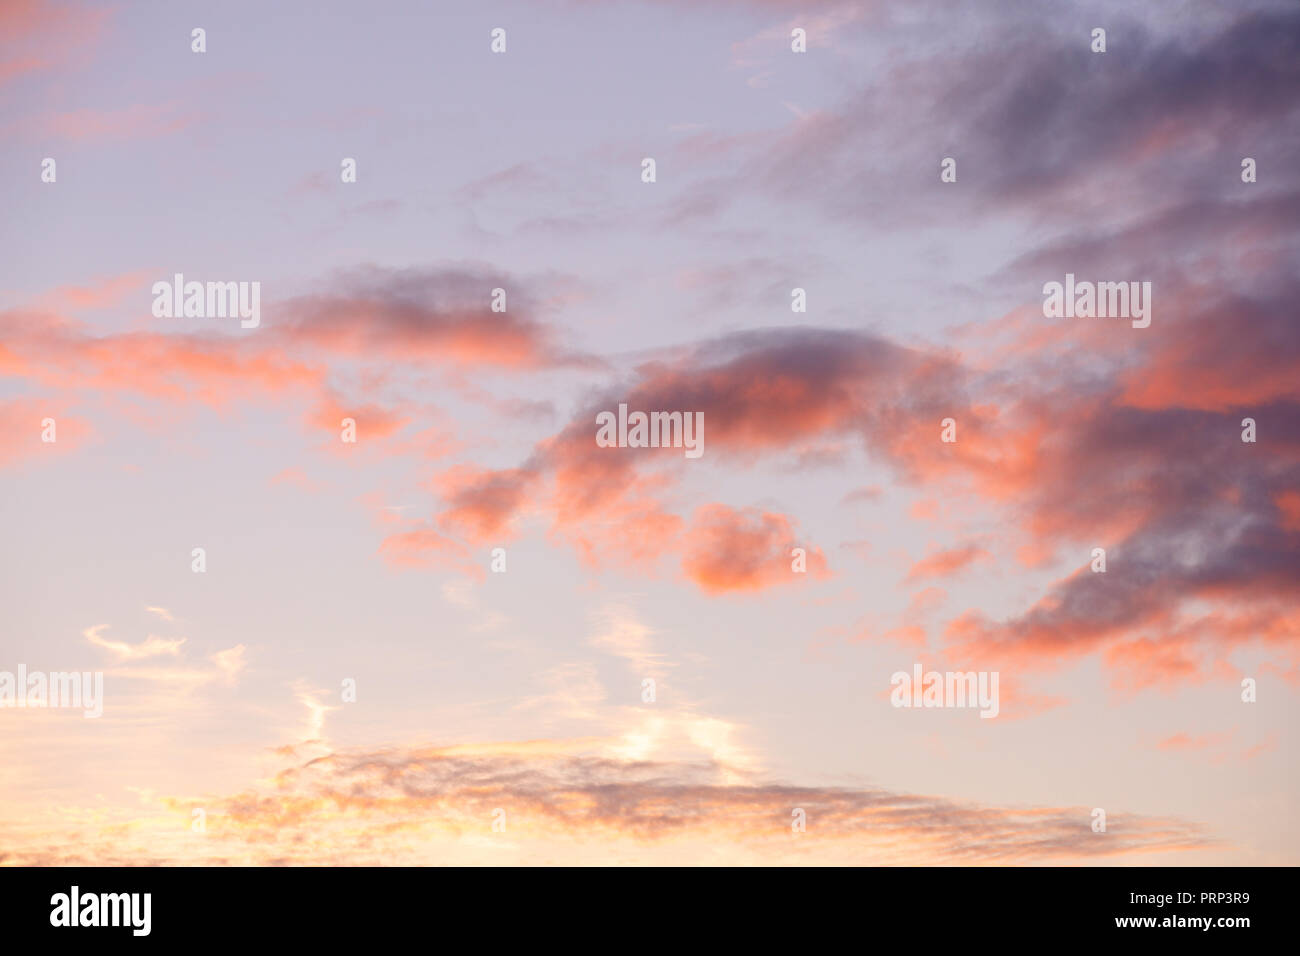 Sunset with warm fluffy clouds - purple pink orange sky - Stock Image